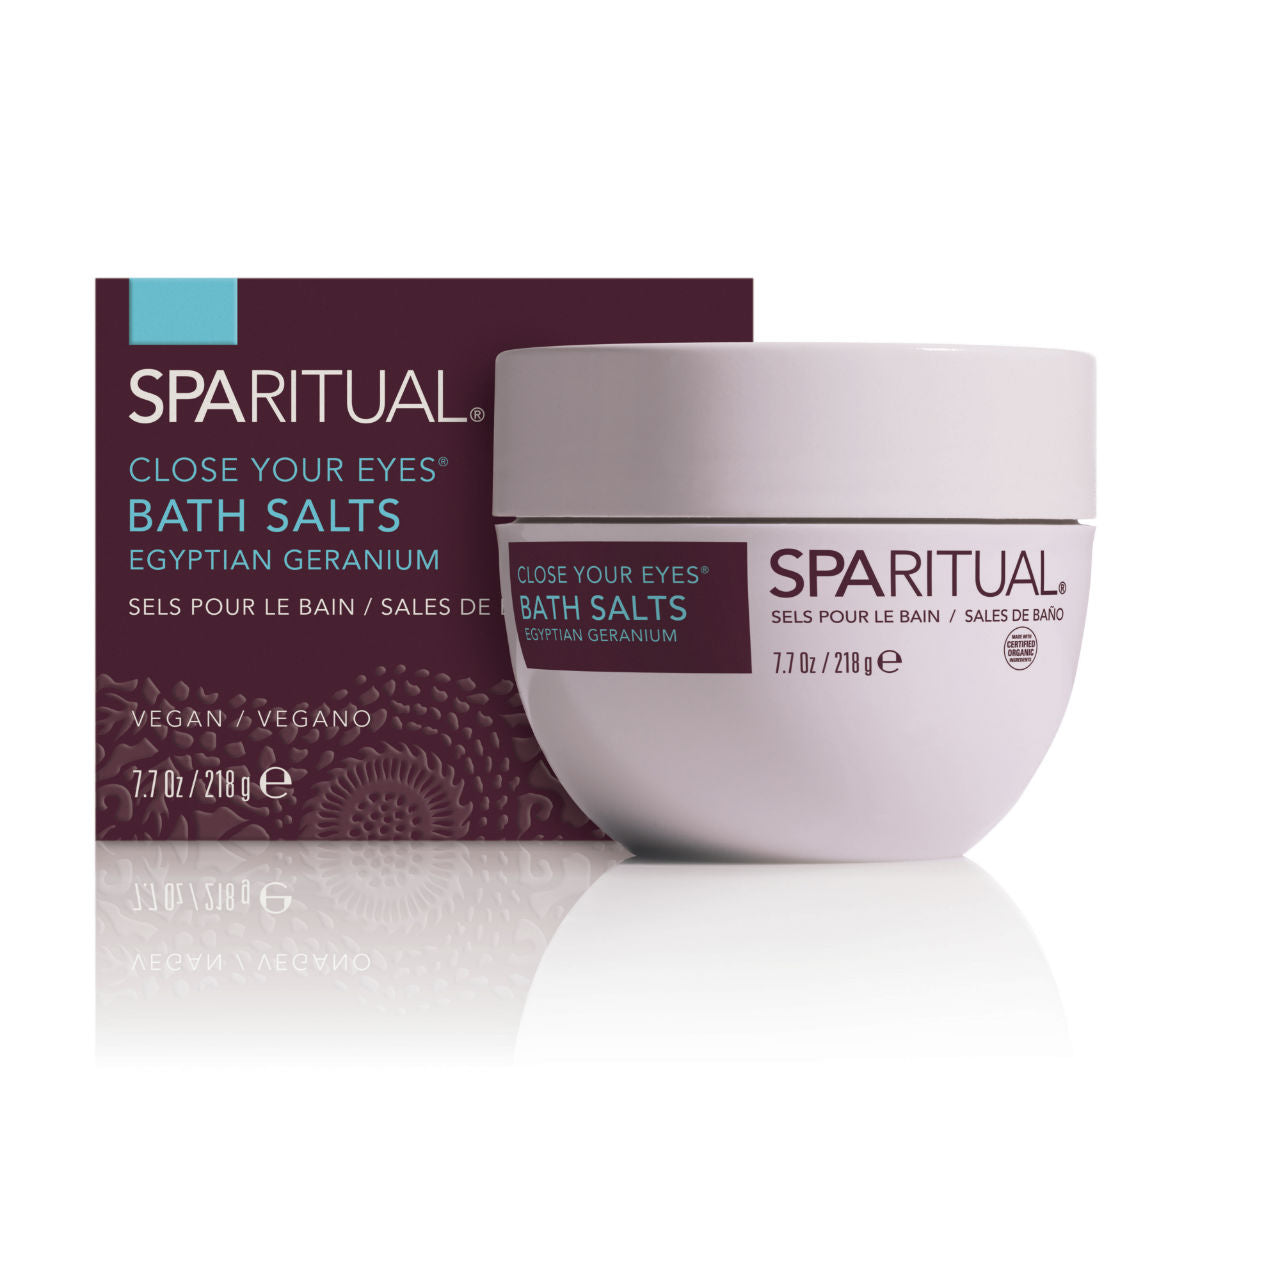 SPARITUAL Close Your Eyes® Bath Salts Box